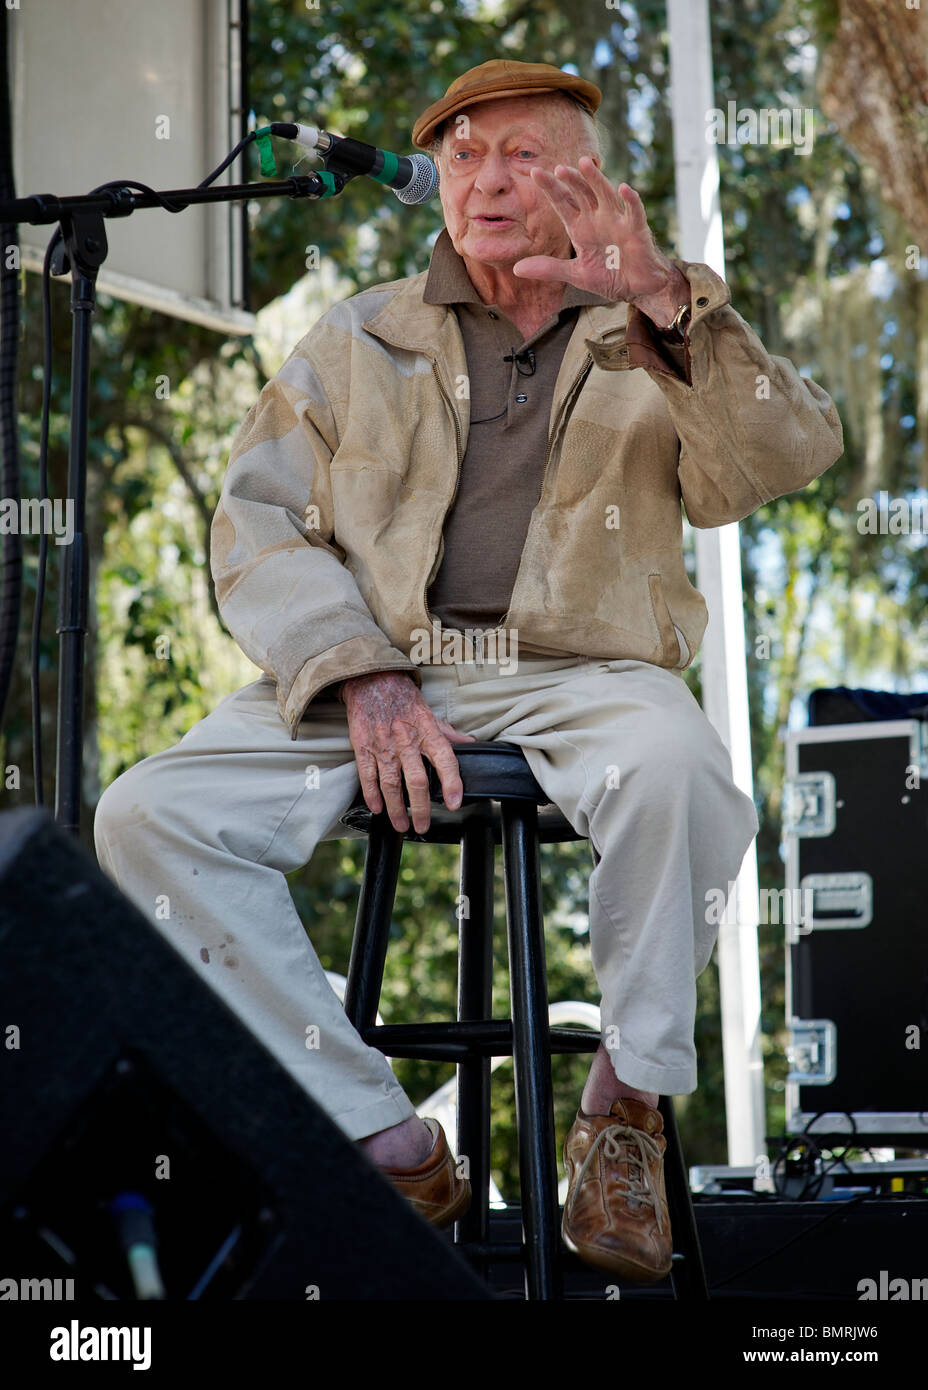 Writer Stetson Kennedy at the Southern Exposure Festival - Stock Image